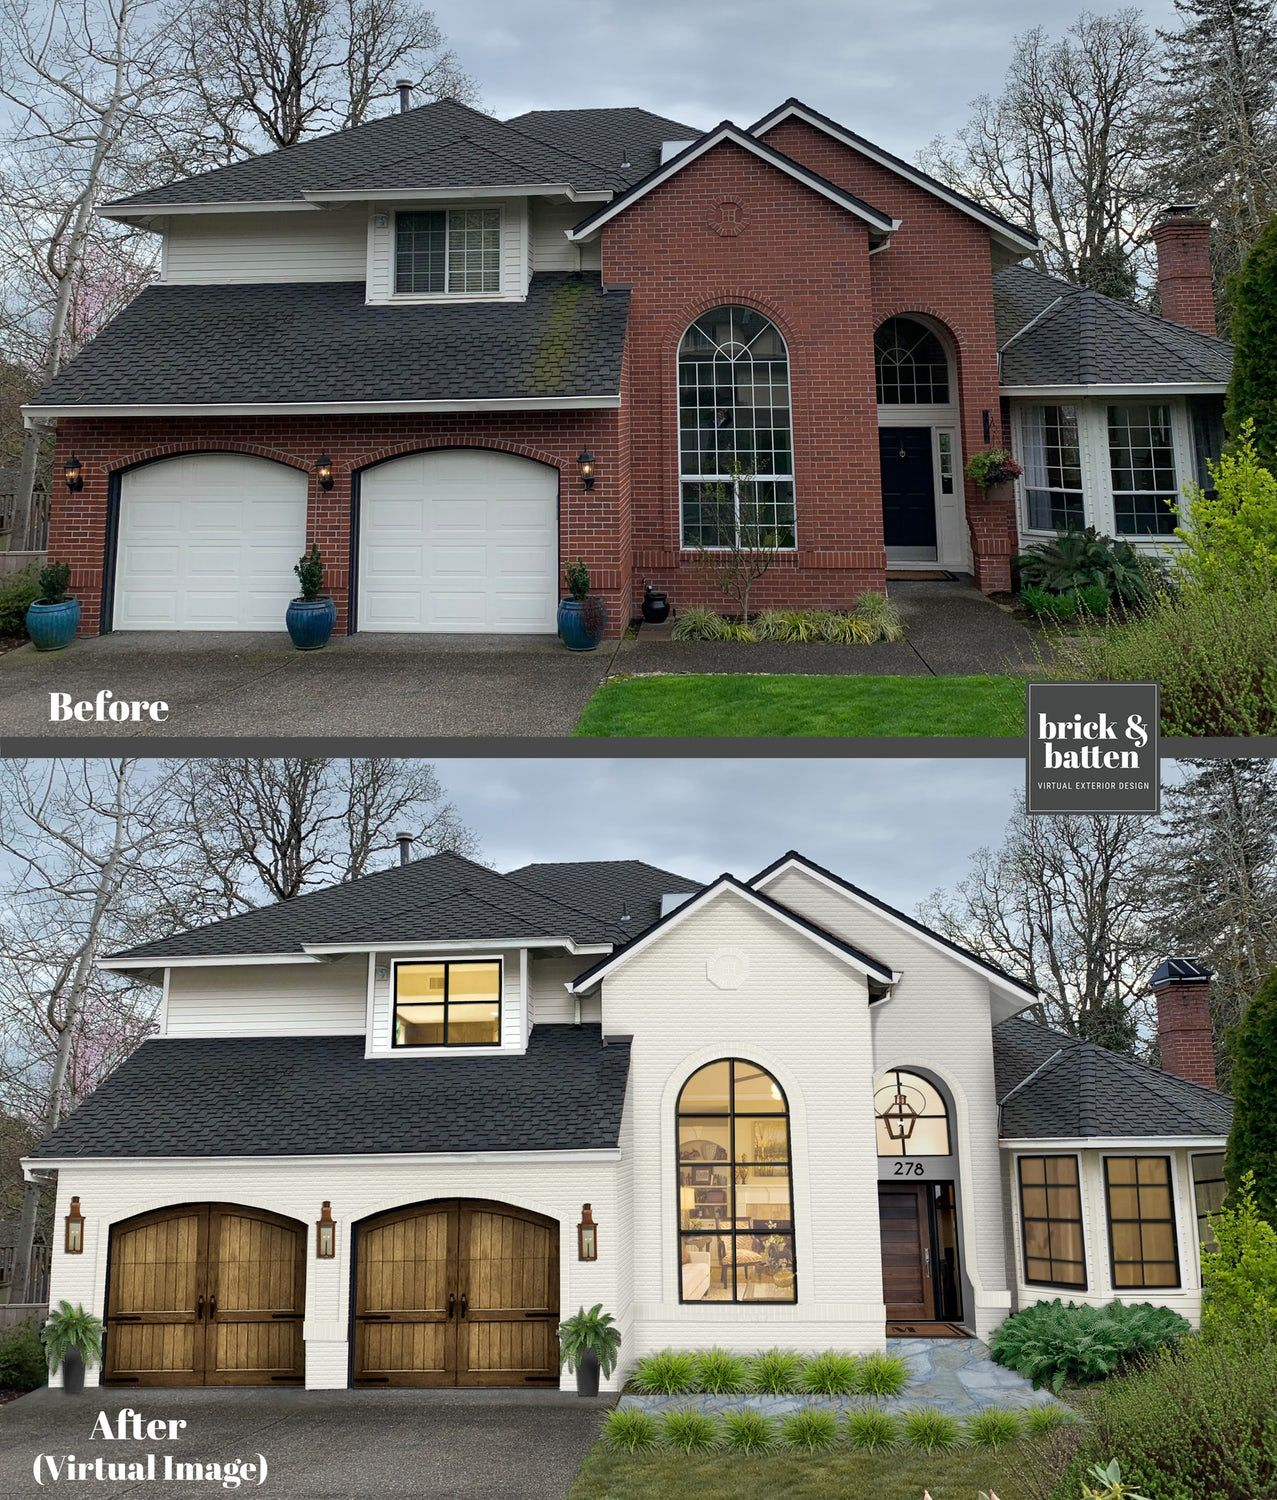 Updating home exterior dating free apps